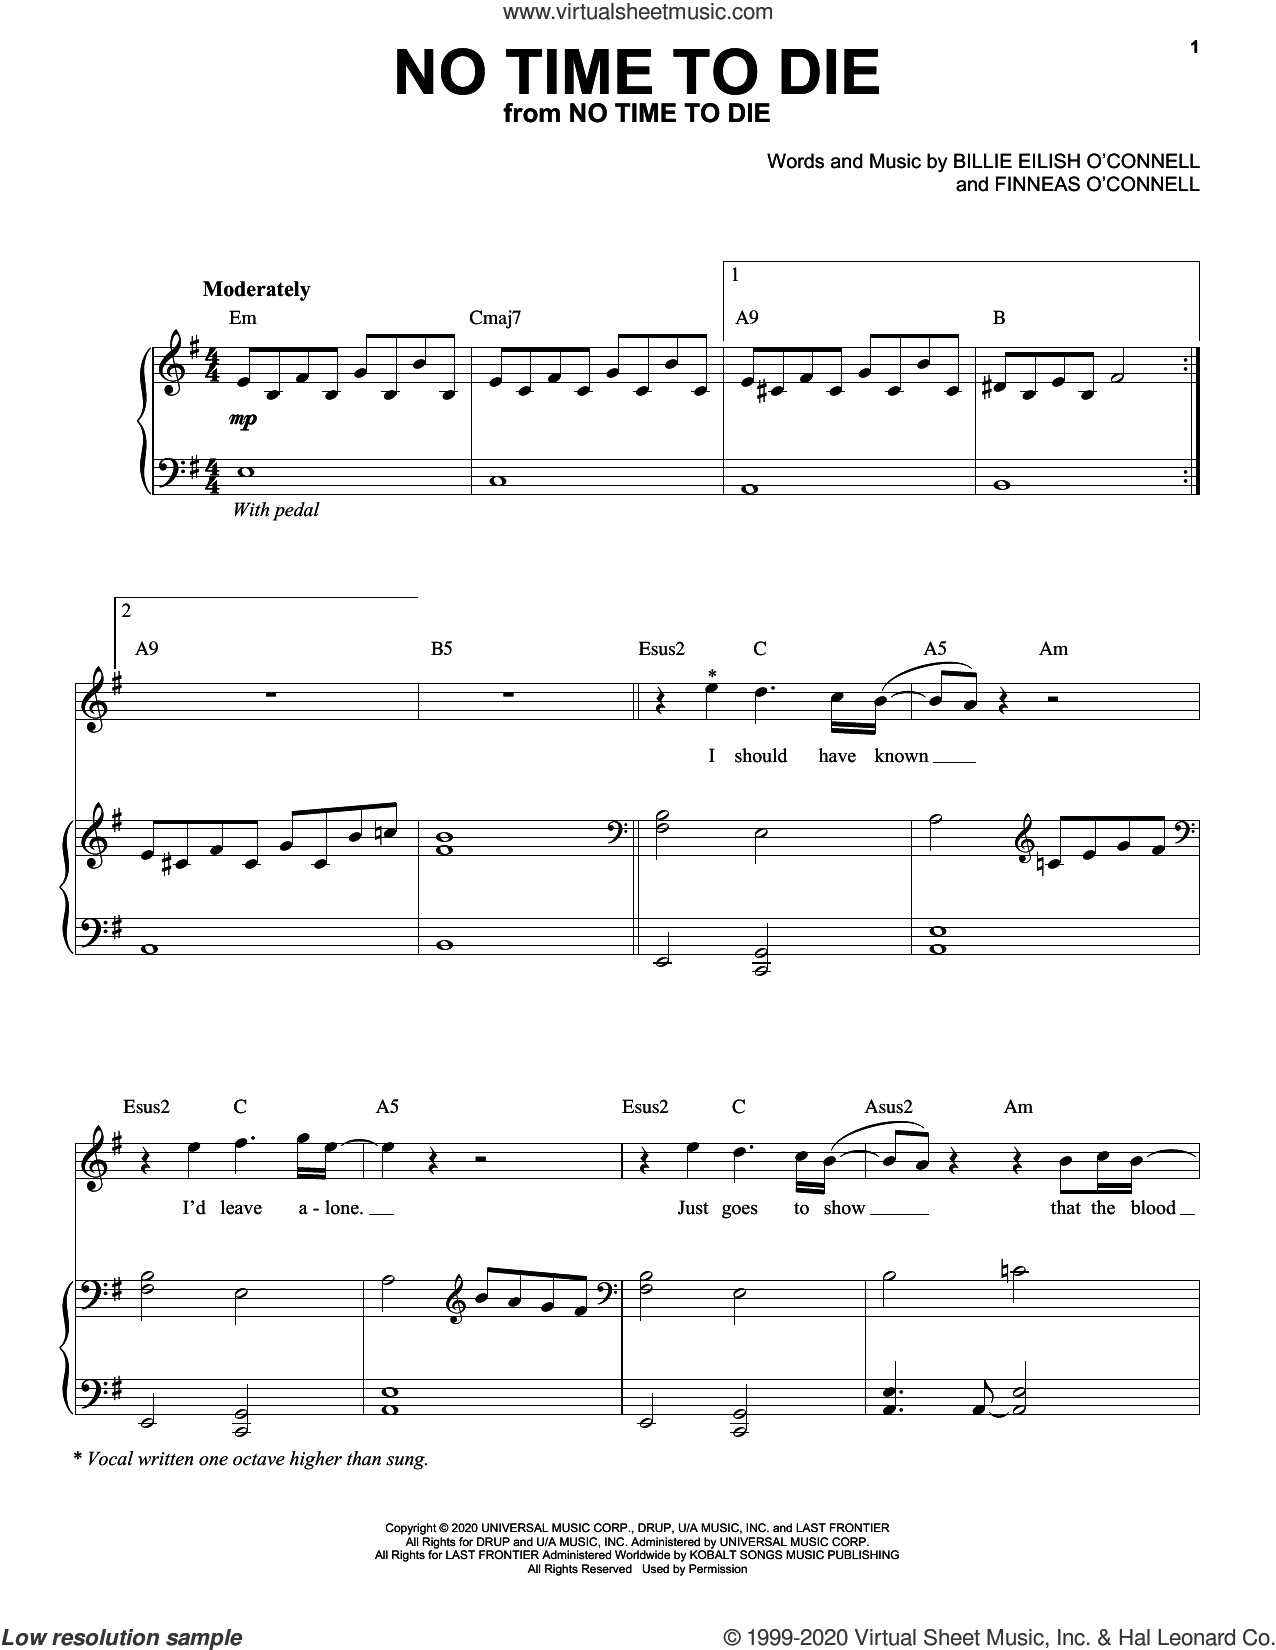 No Time To Die sheet music for voice and piano by Billie Eilish, intermediate skill level